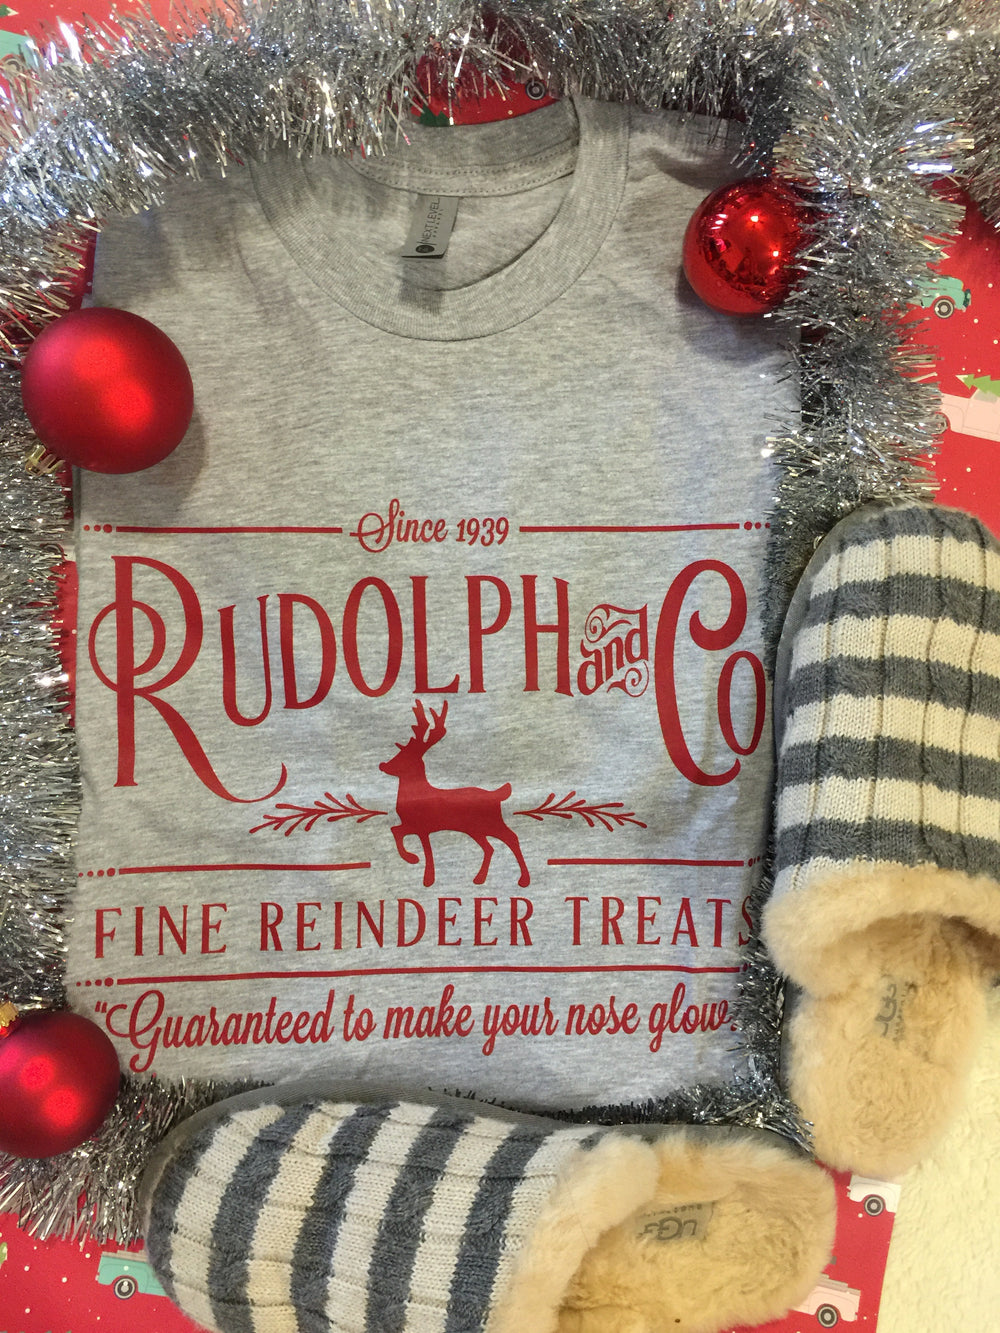 Rudolph + Co Reindeer Treats Christmas Graphic Tee